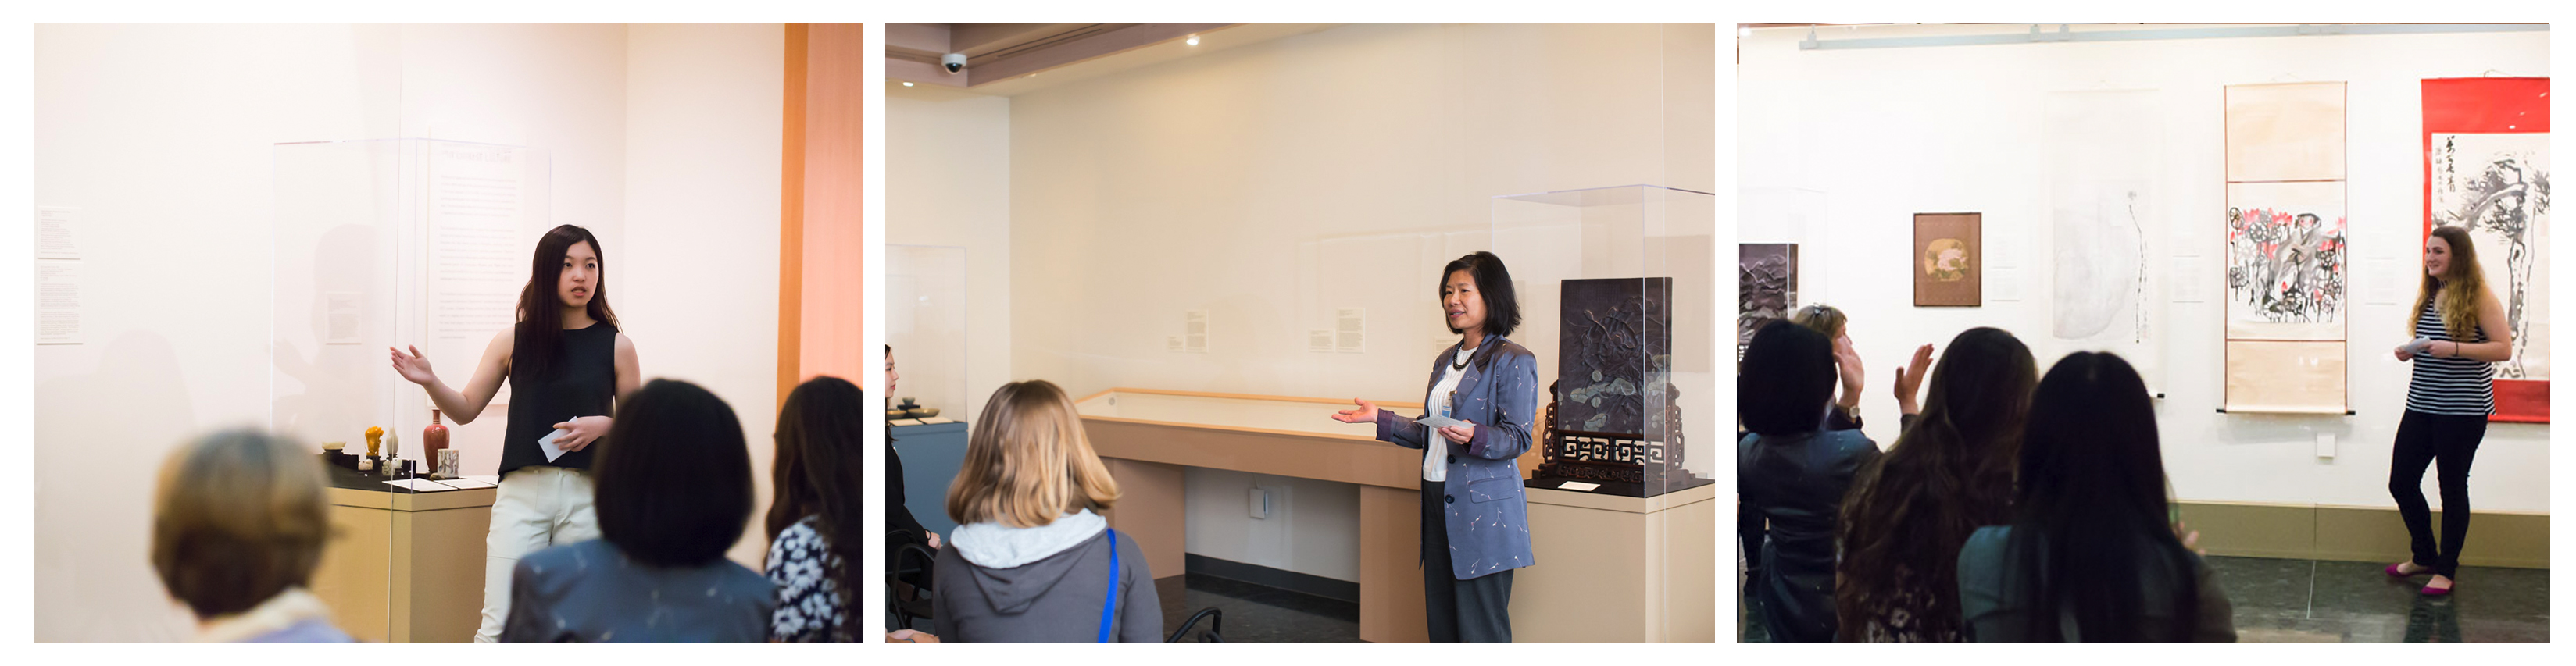 Photos from presentations by Gloria, Professor Sujane Wu, and Molly